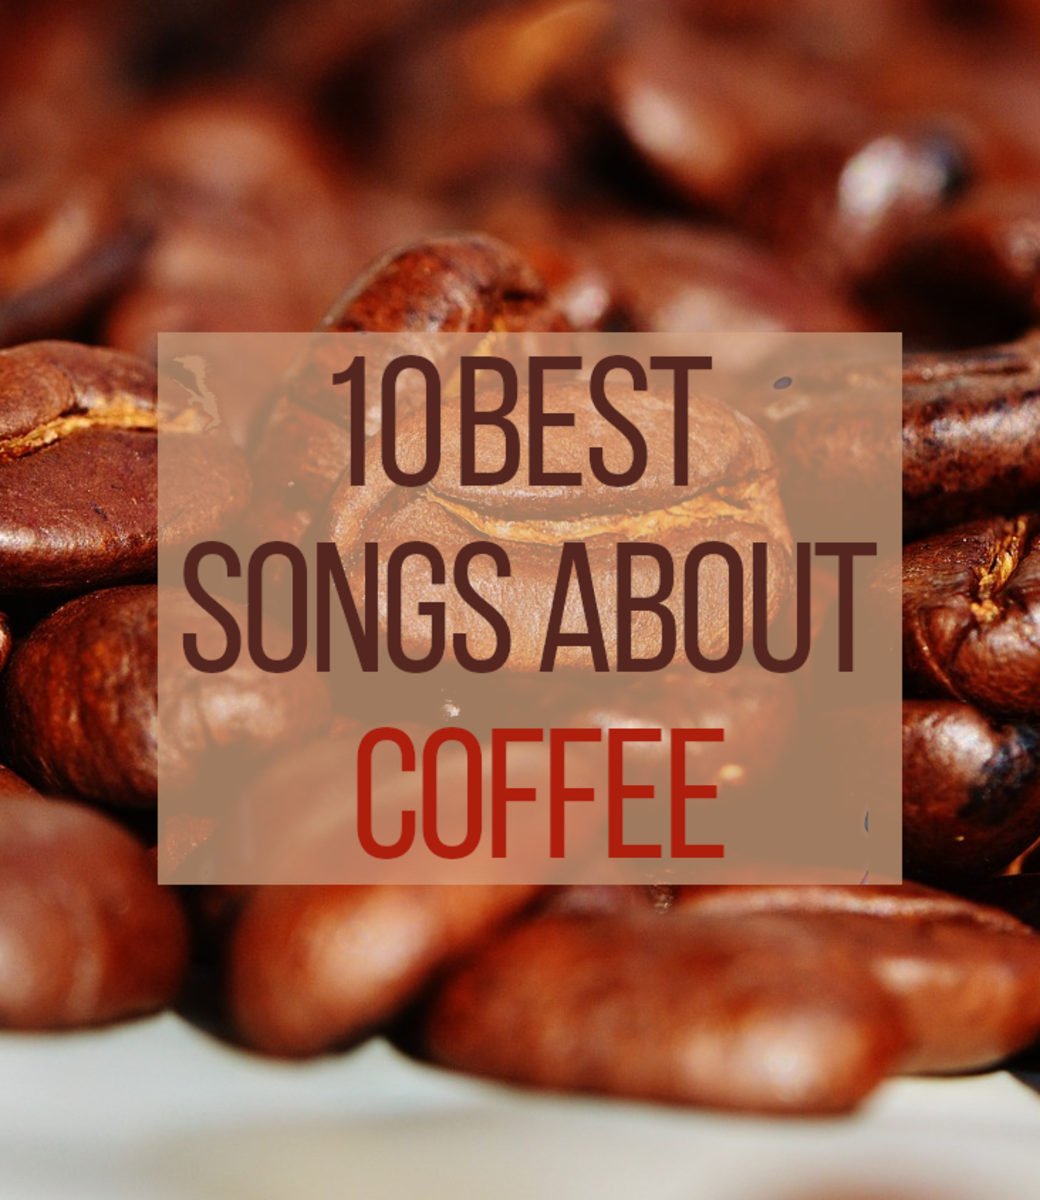 As well as making a tasty and enlivening beverage, coffee also makes great subject matter for many song lyrics.  Listed below are some of the best coffee songs.